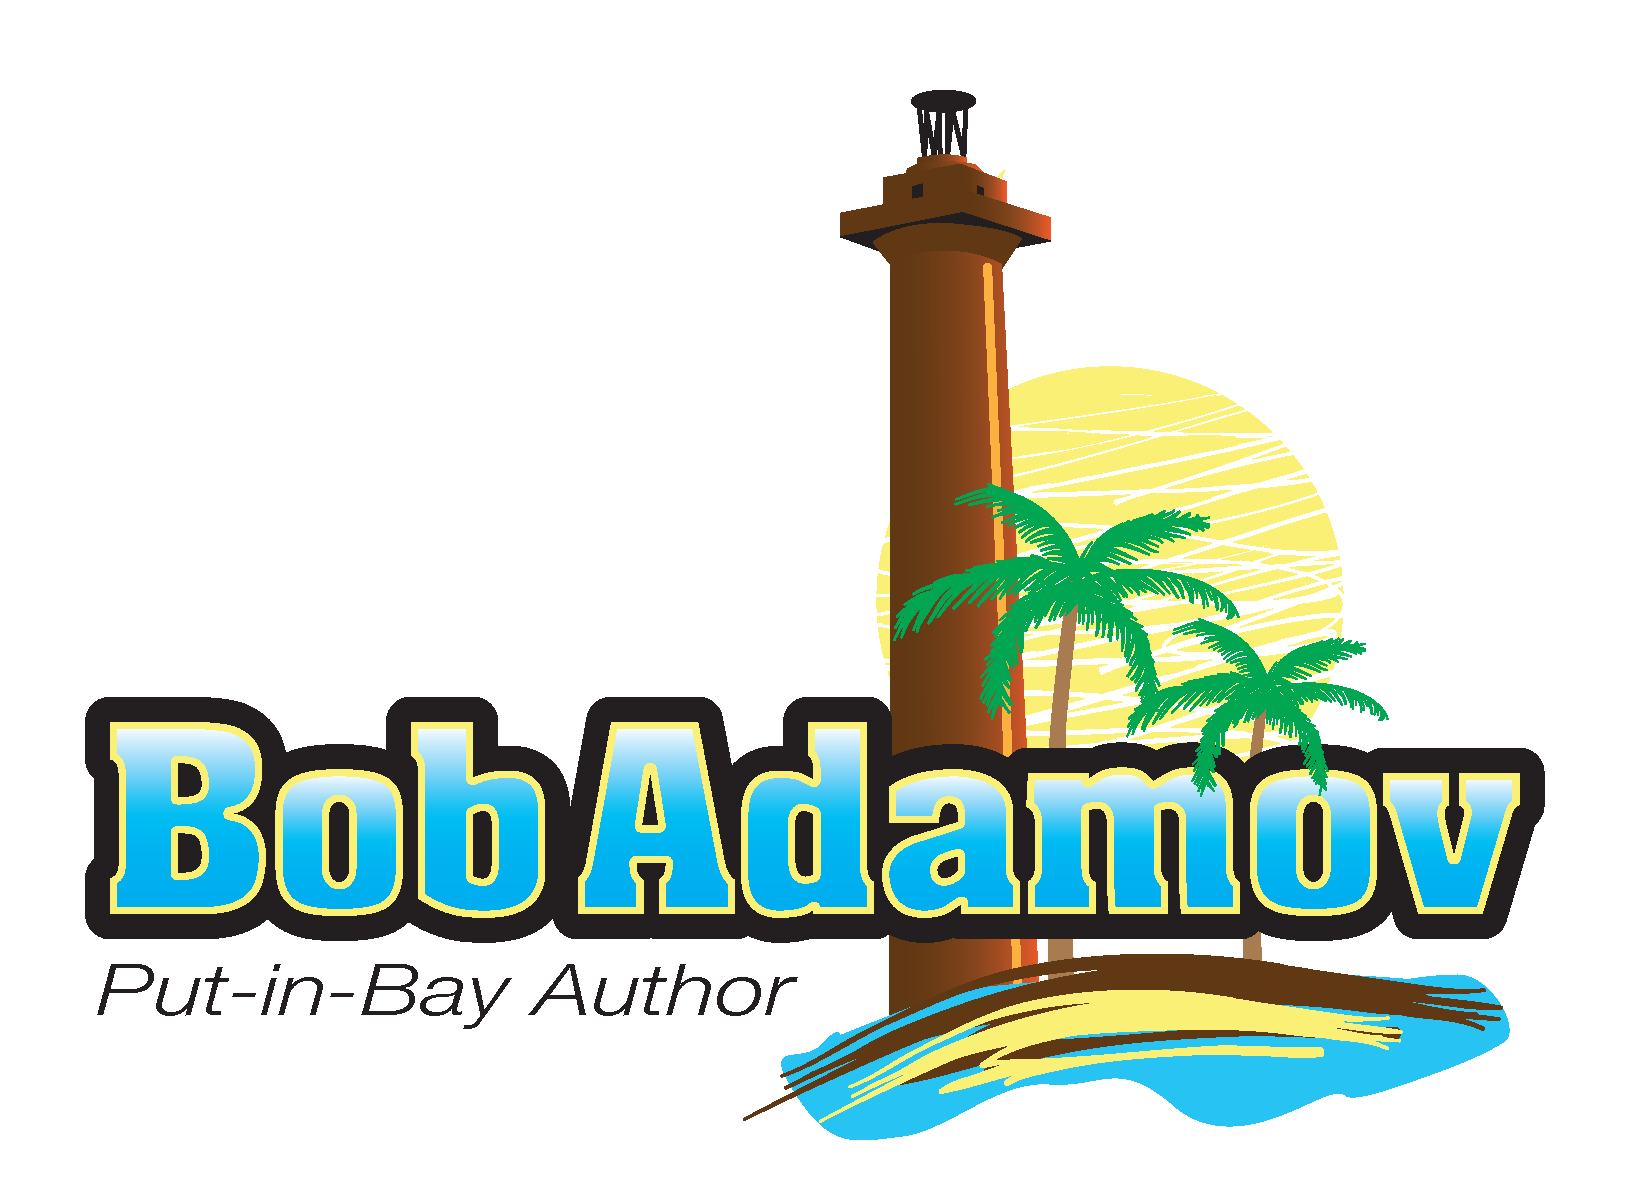 Bob Adamov - Put-In-Bay Author